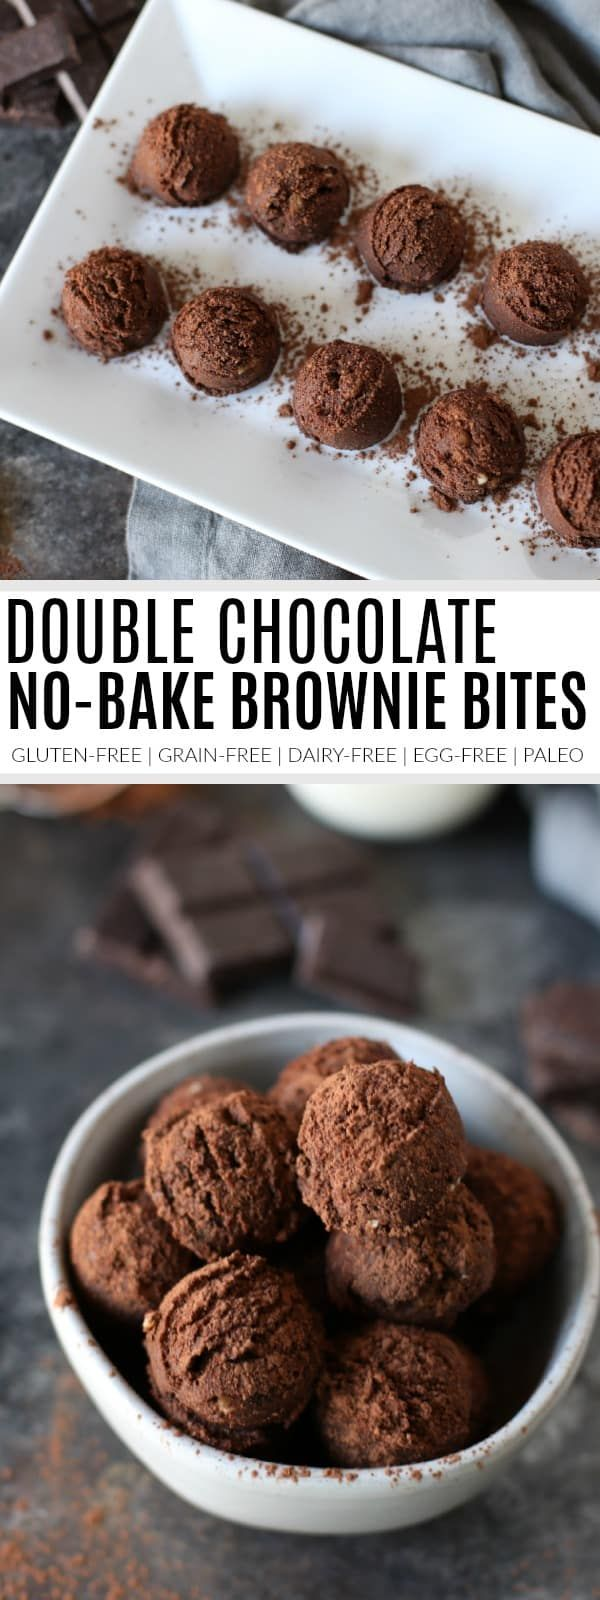 pinterest image for double chocolate no-bake brownie bites